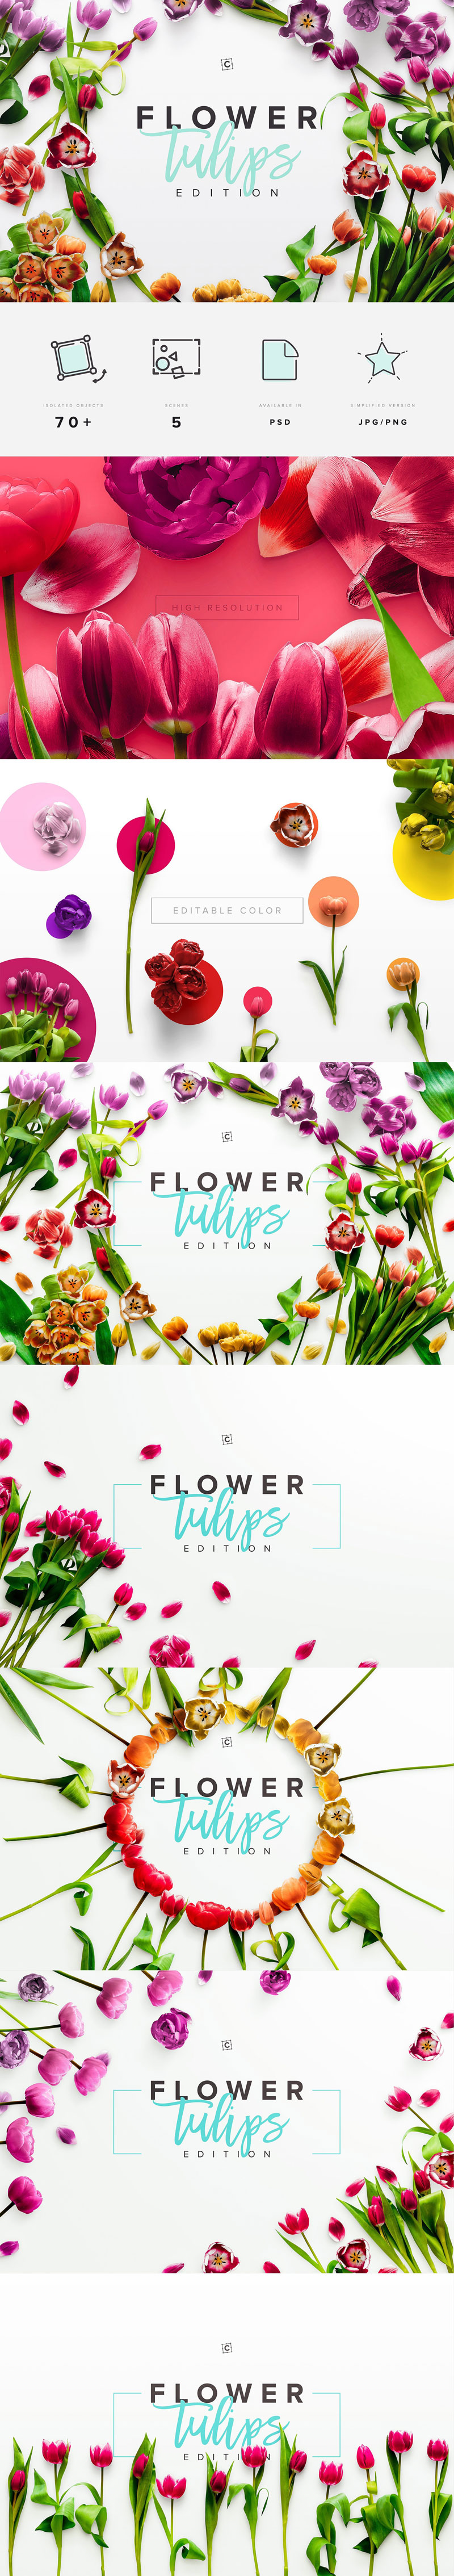 Flower Tulips Edition – Custom Scene